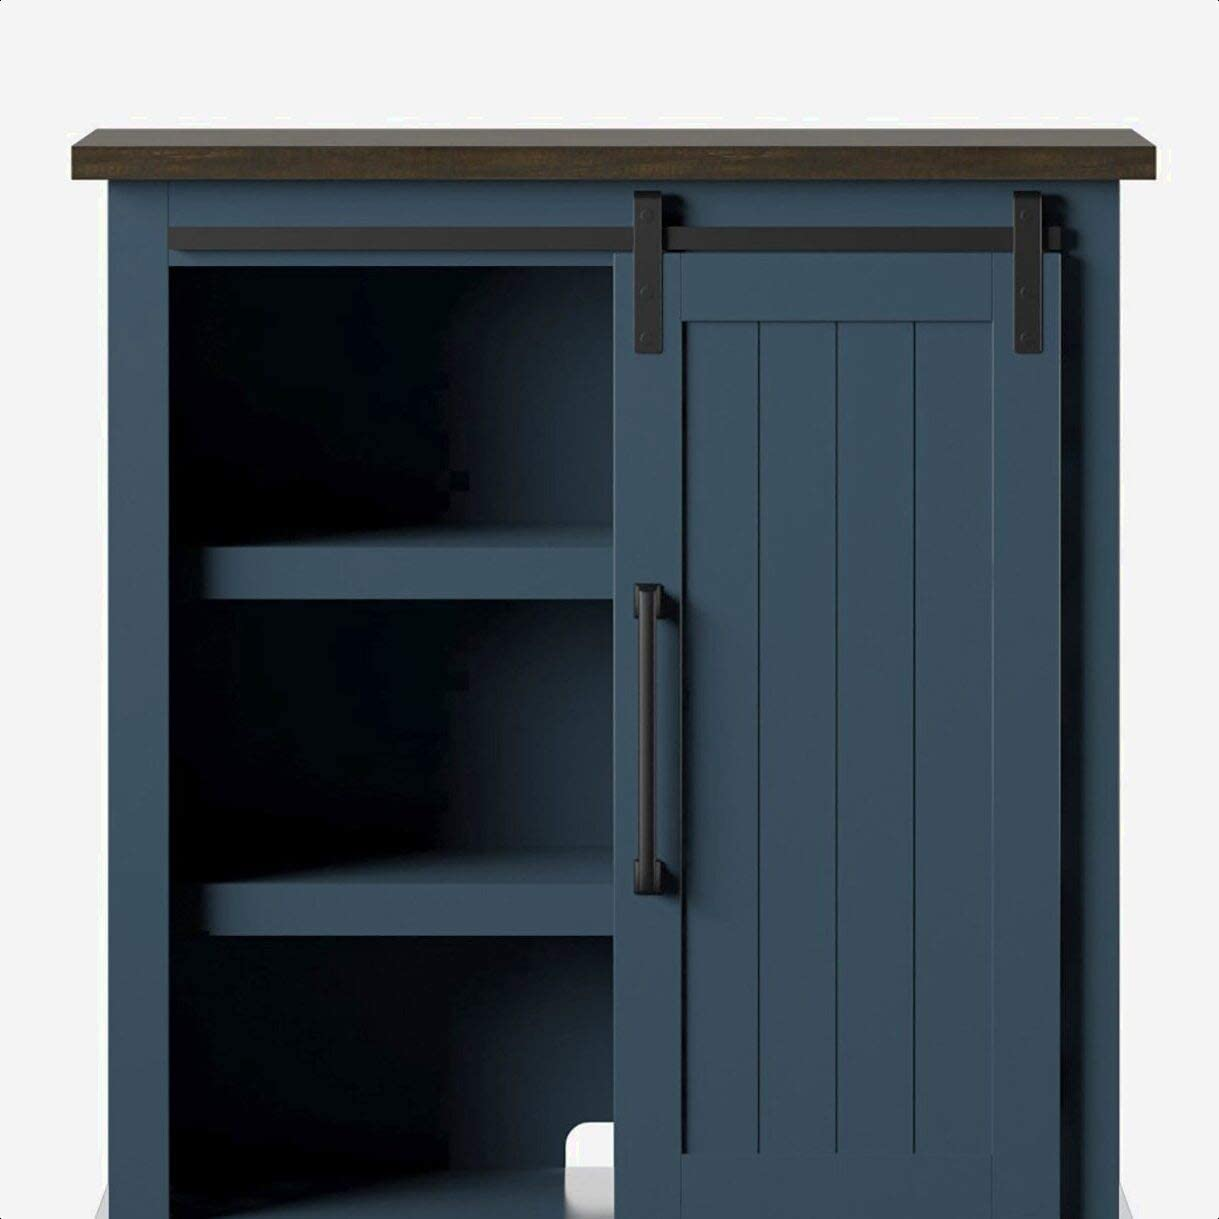 Max 77% OFF 1 Door Accent Cash special price Cabinet Sliding fo planked Features a Design